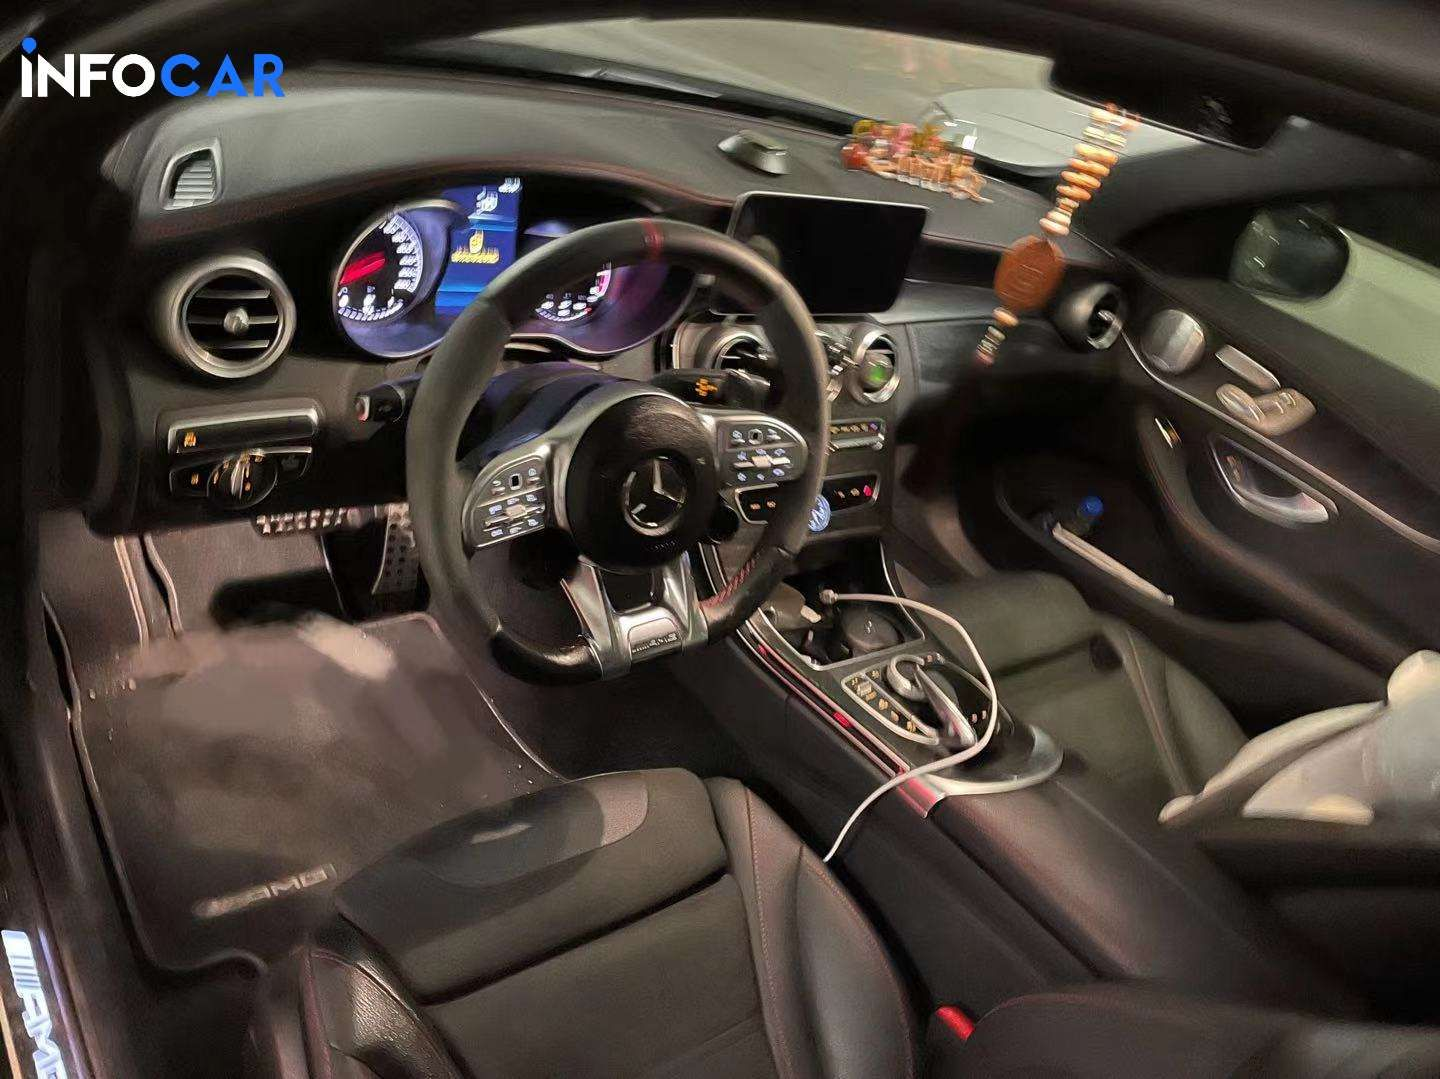 2020 Mercedes-Benz C-Class C43 AMG - INFOCAR - Toronto's Most Comprehensive New and Used Auto Trading Platform